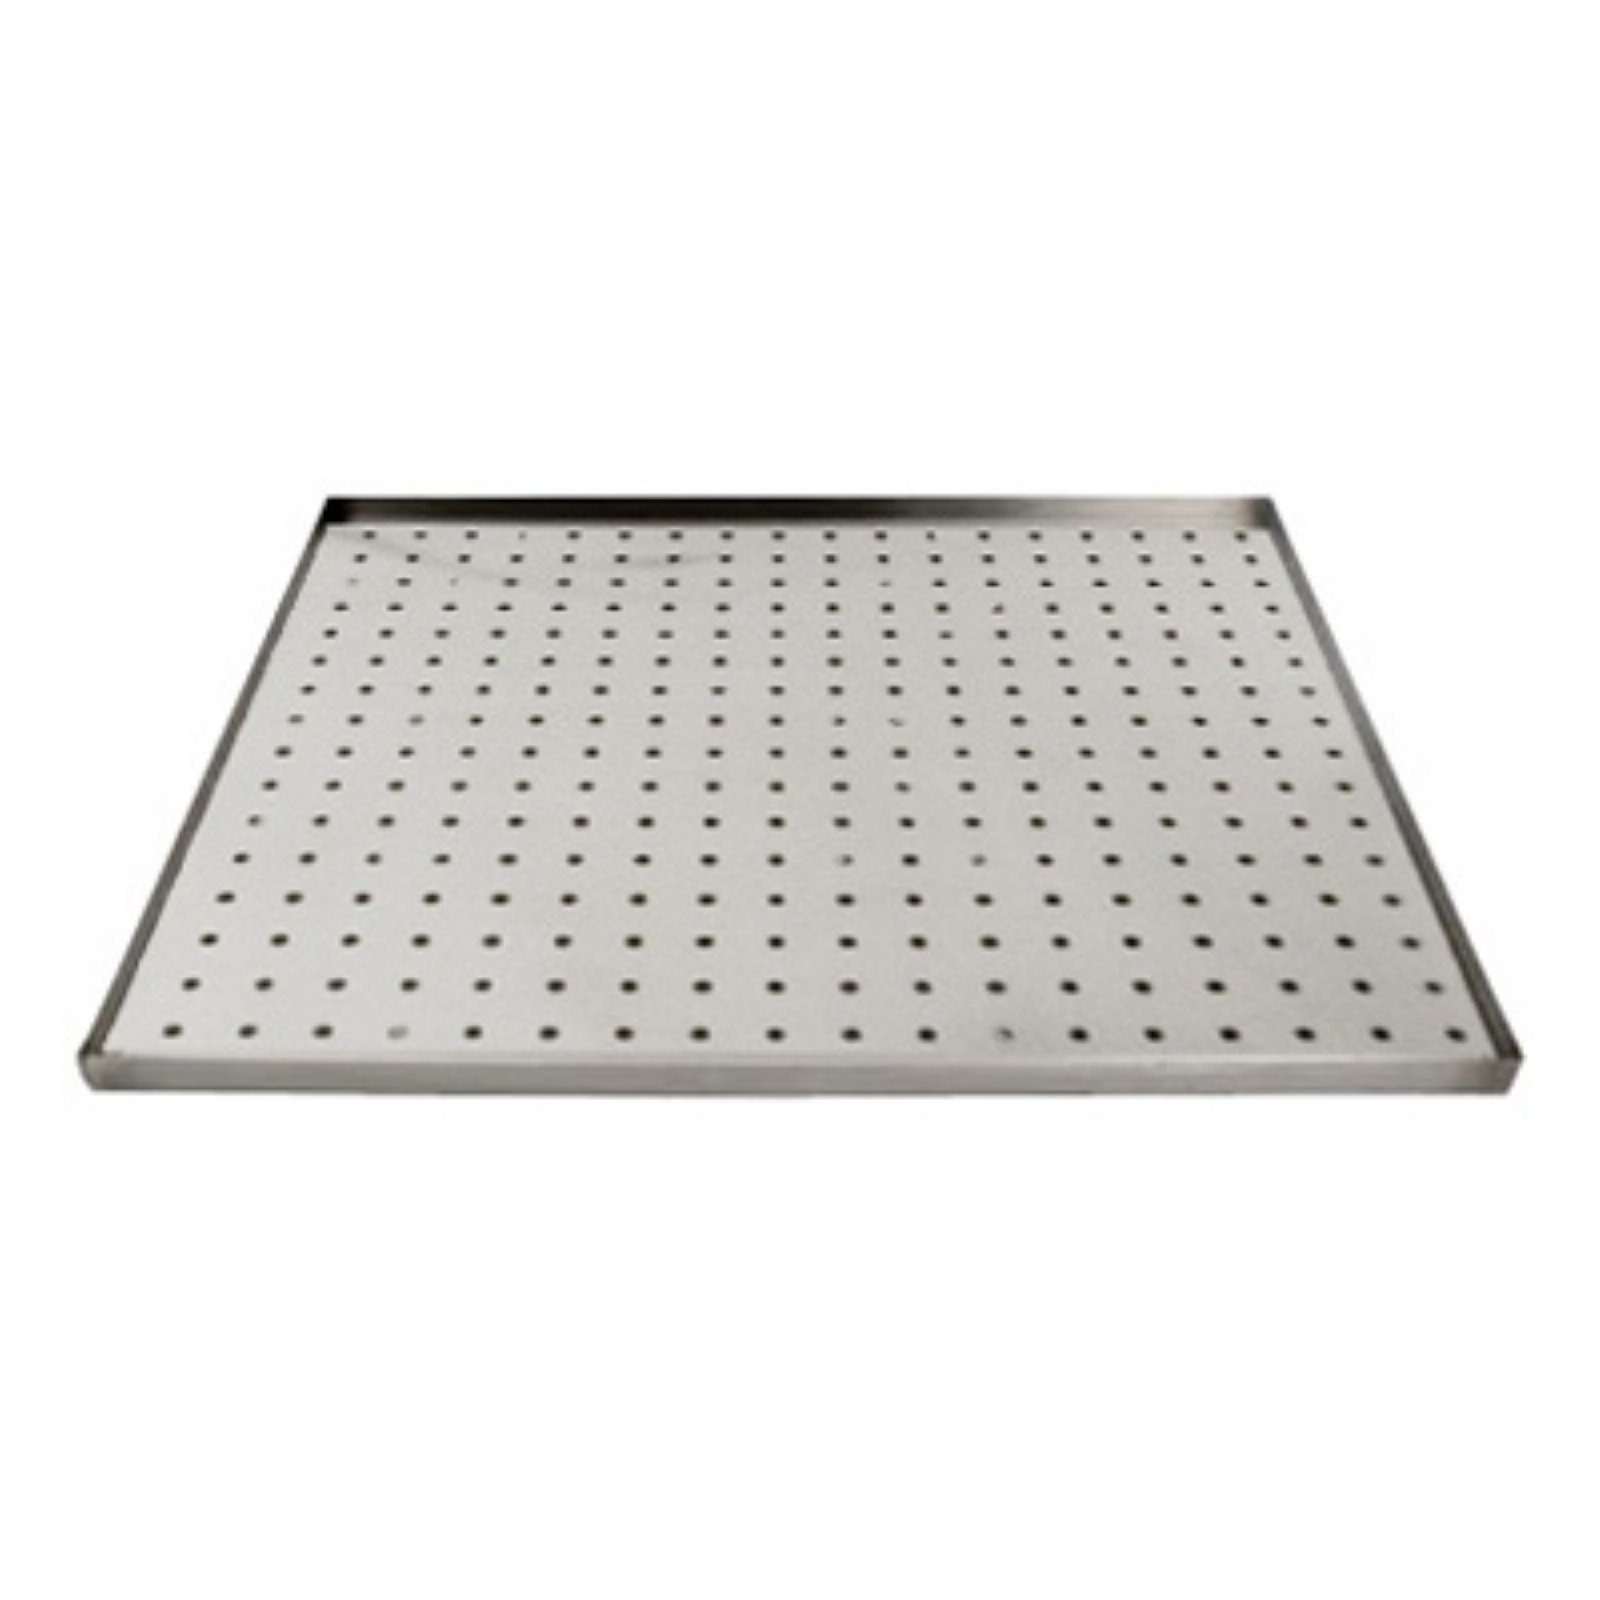 TSM 32746 Perforated Dehydrator Drying Tray for D12-D14 and D20